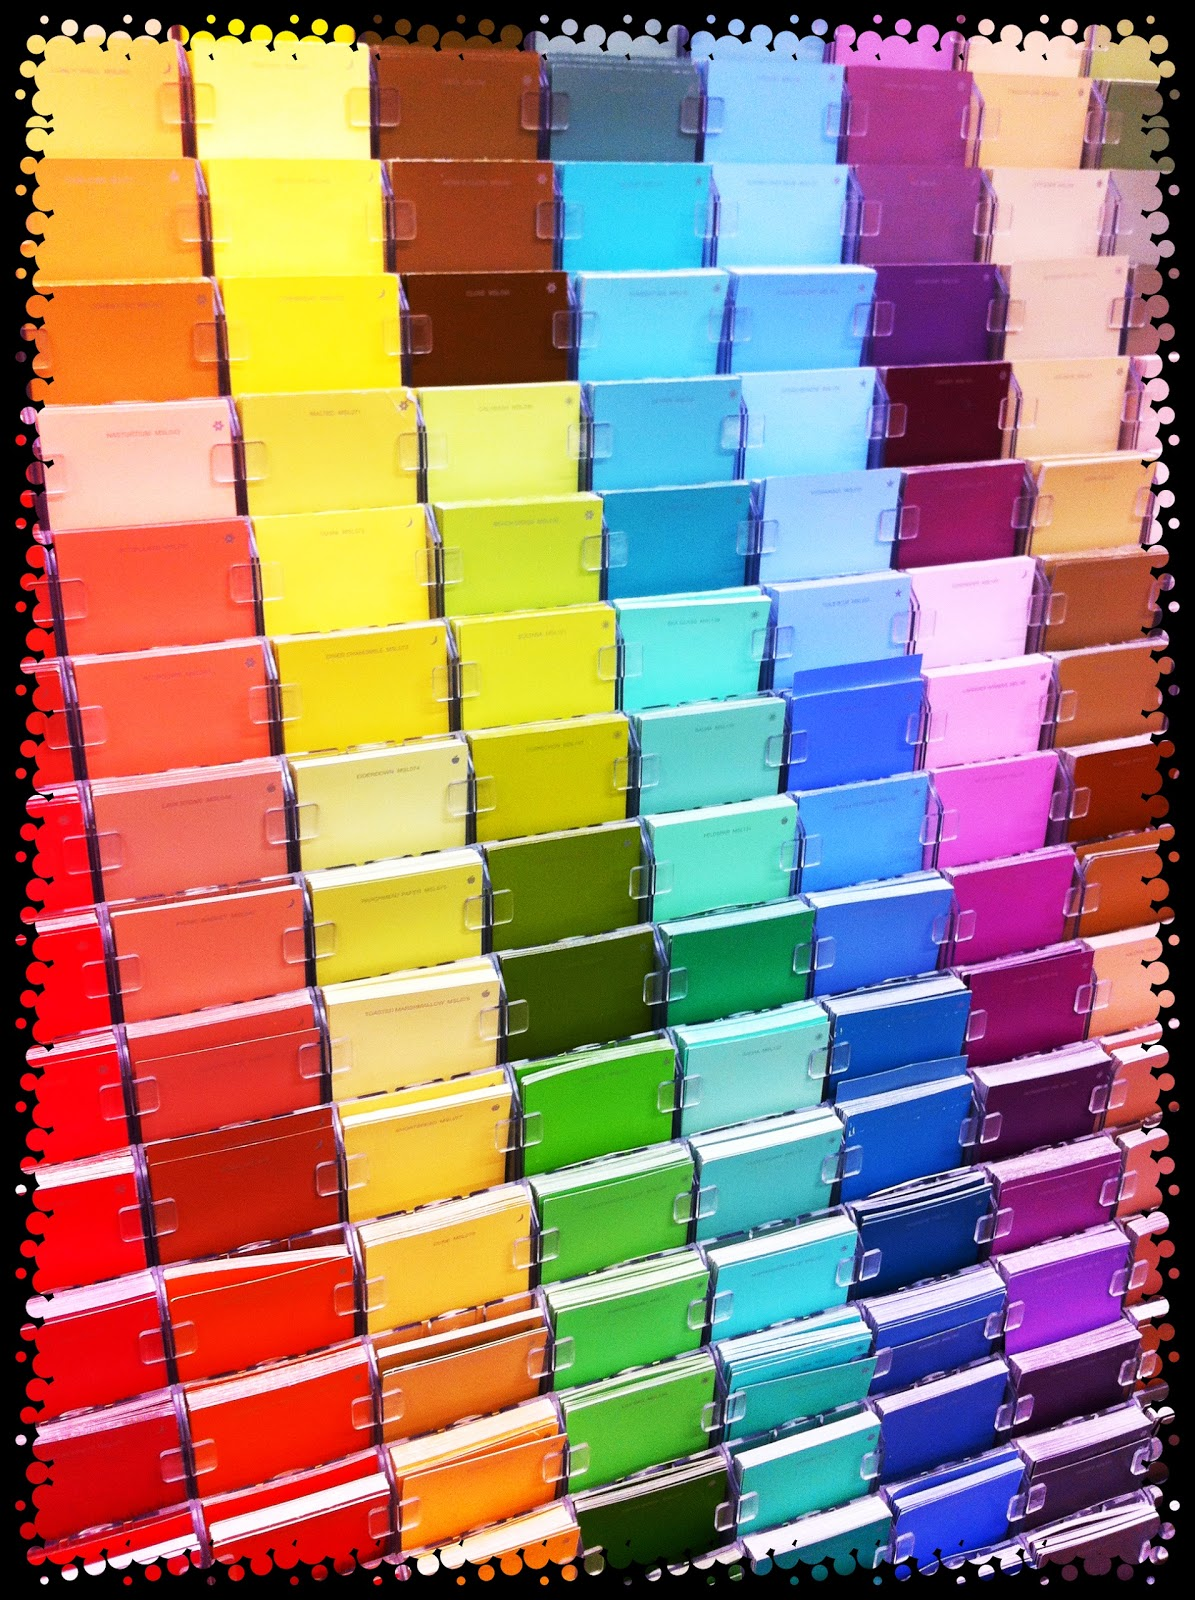 Home depot paint swatches home painting ideas - Home depot paint design ideas ...